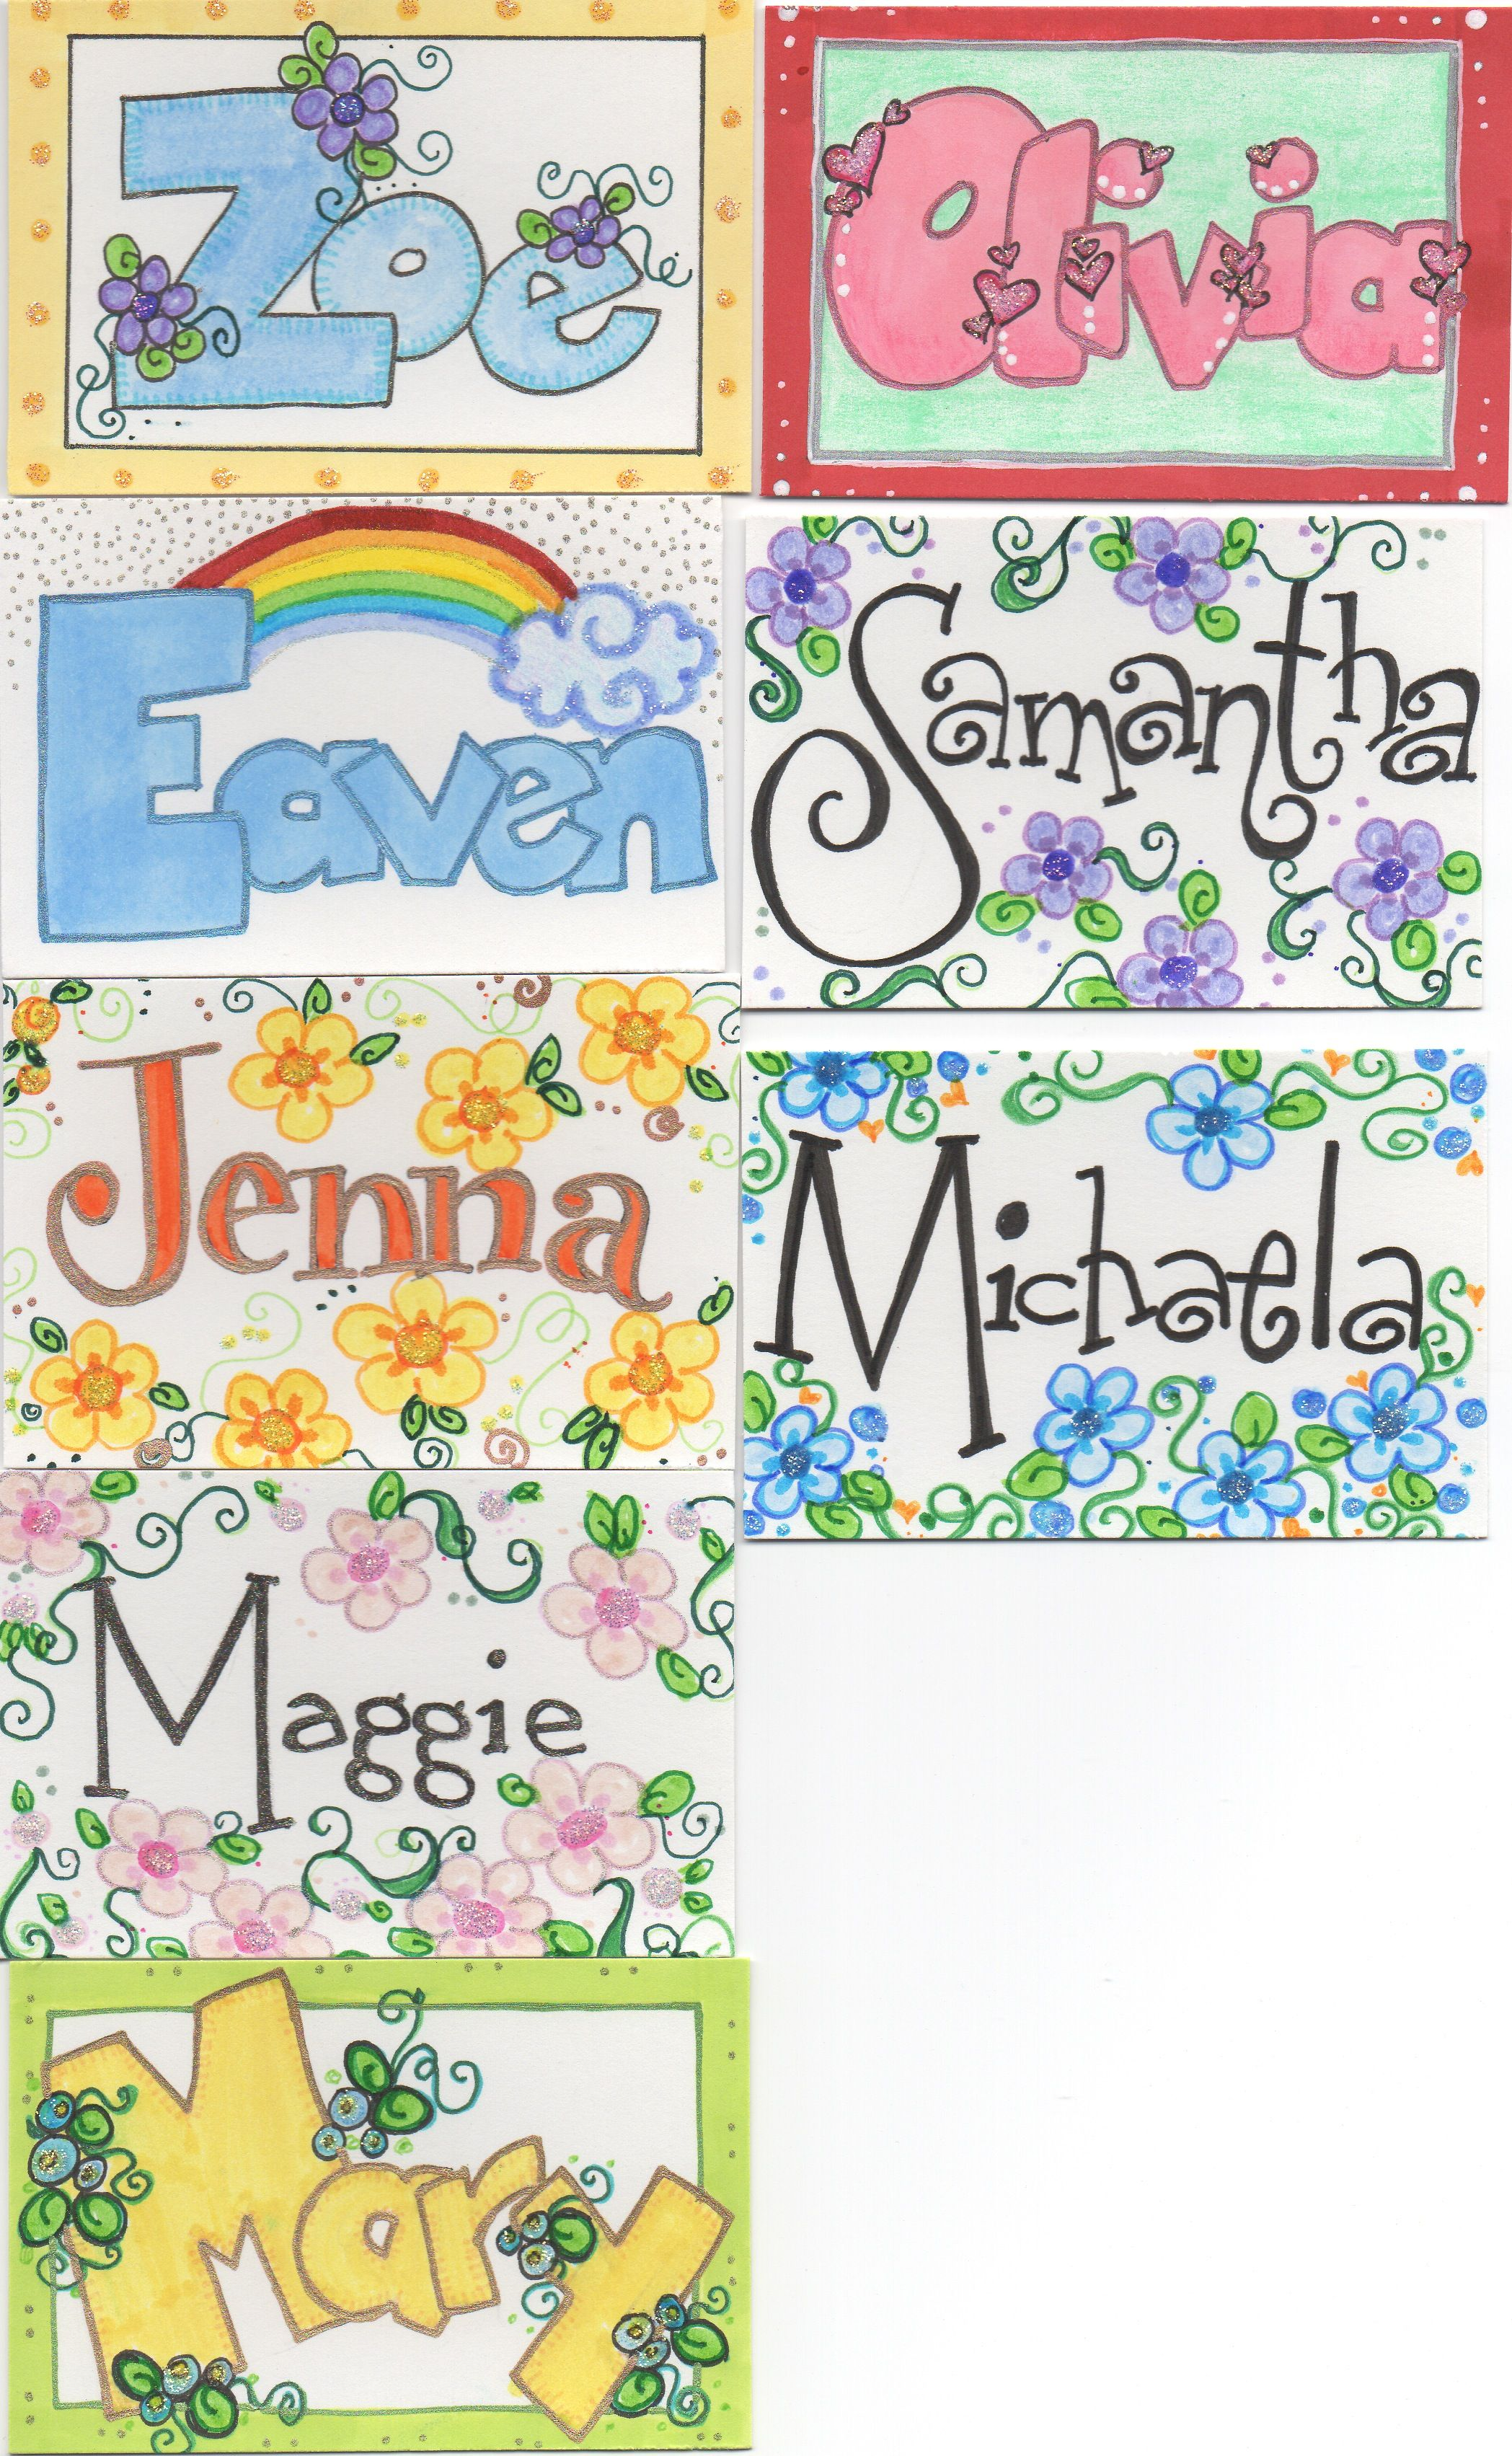 Name tags I drew for kids I work with. 4 | Dawn Alice Rogers - My ...